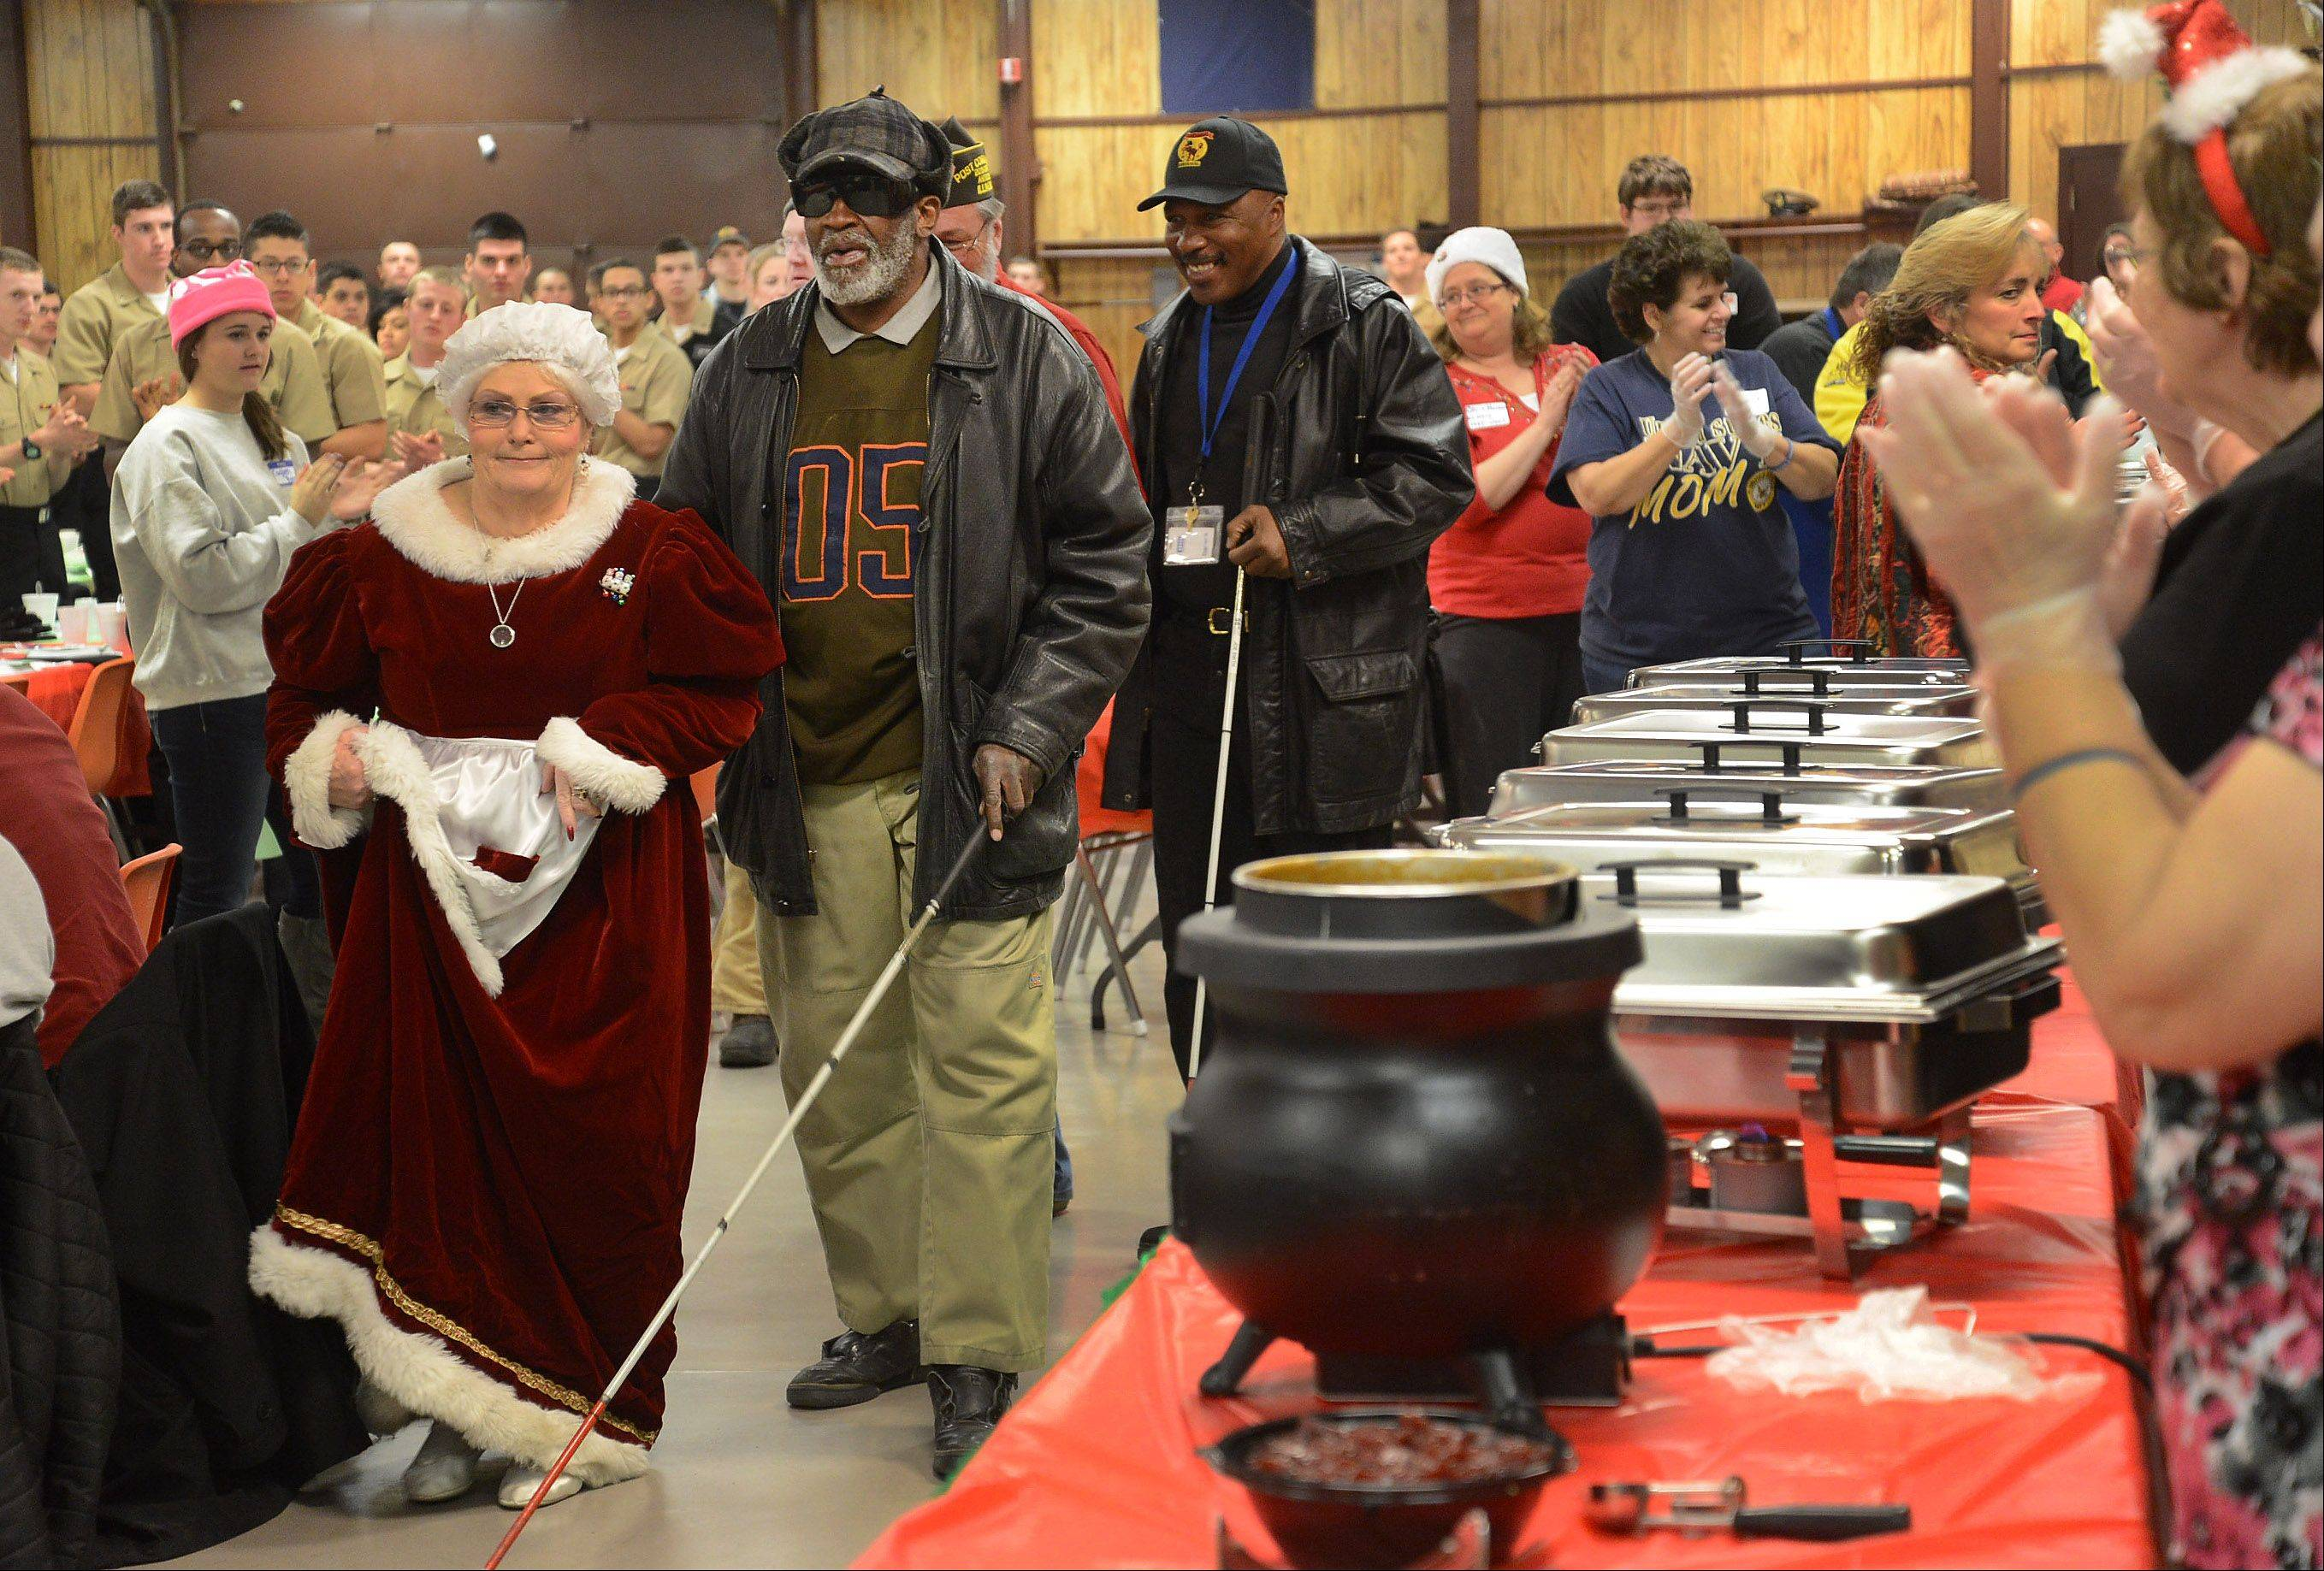 Mrs. Claus, aka Jan Oerly, helps to escort Rodney Williams of the blind unit from Hines VA Hospital to a table, as the VFW in Antioch hosted 350 sailors from Great Lakes and 50 veterans Saturday from Lovell and Hines hospitals for a full Christmas dinner.